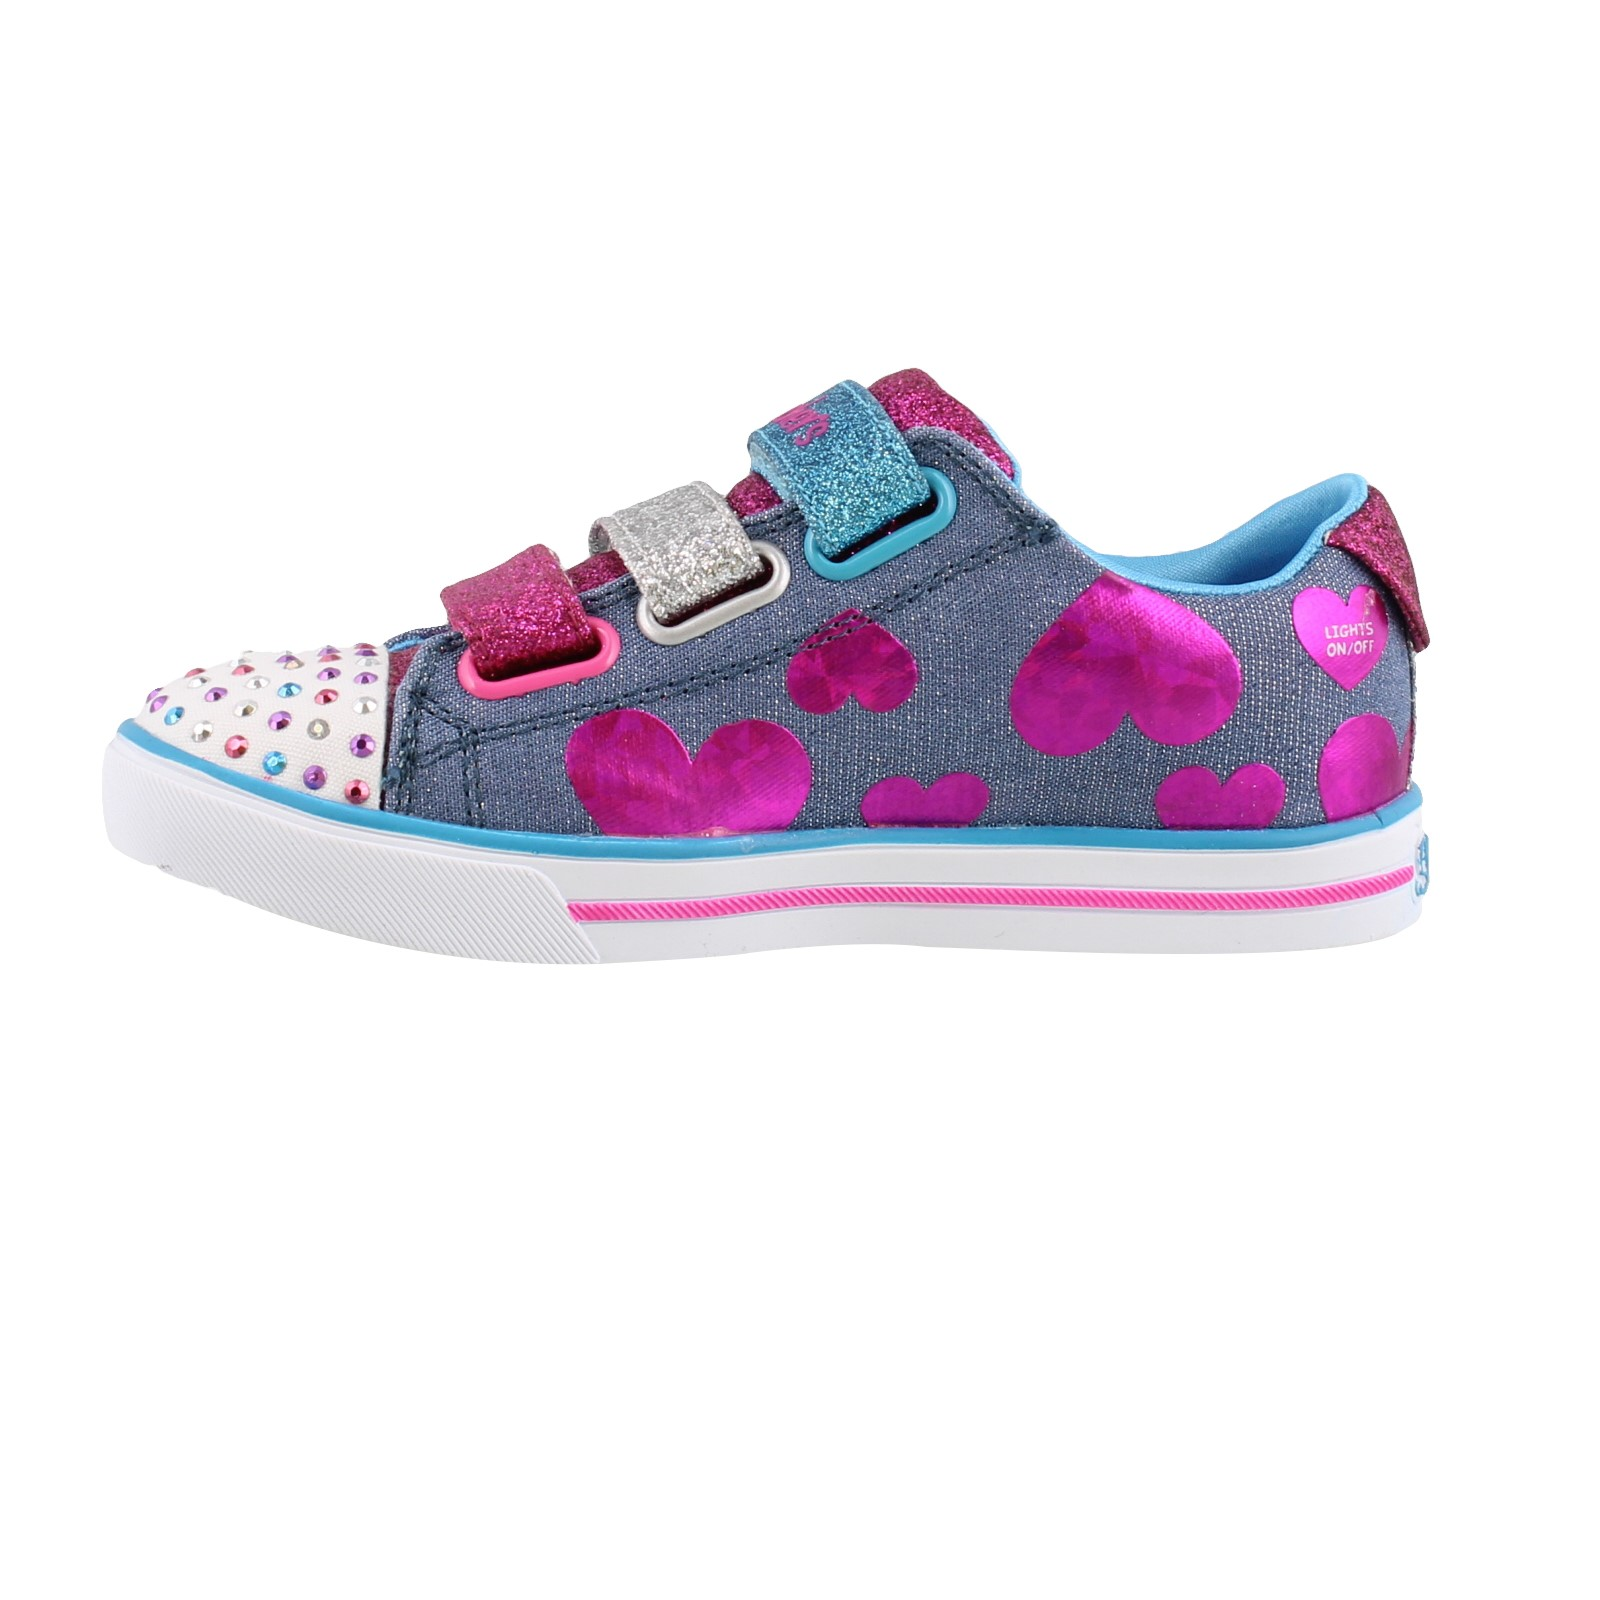 bcead8a8503a Next. add to favorites. Kid s SKECHERS GIRLS